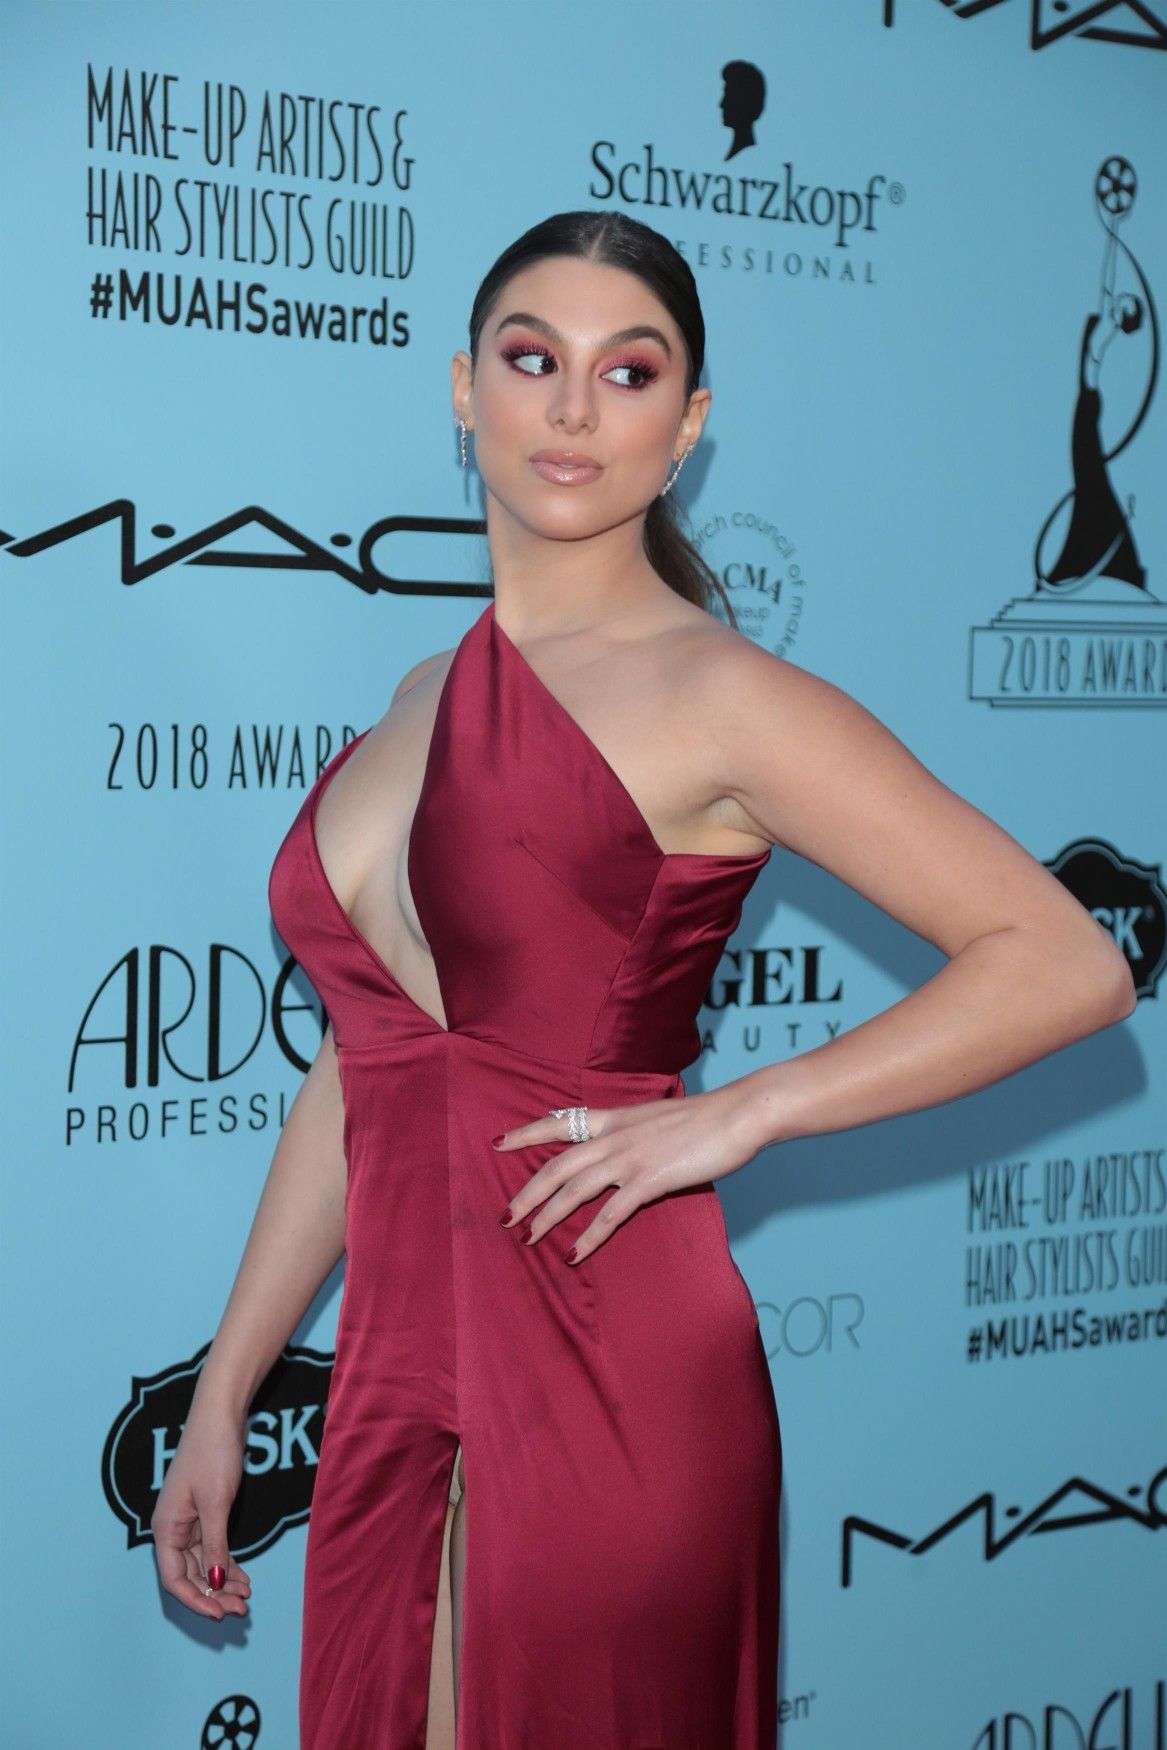 kira-kosarin-panty-upskirt-at-2018-make-up-artists-and-hair-stylists-guild-awards-in-la-6865